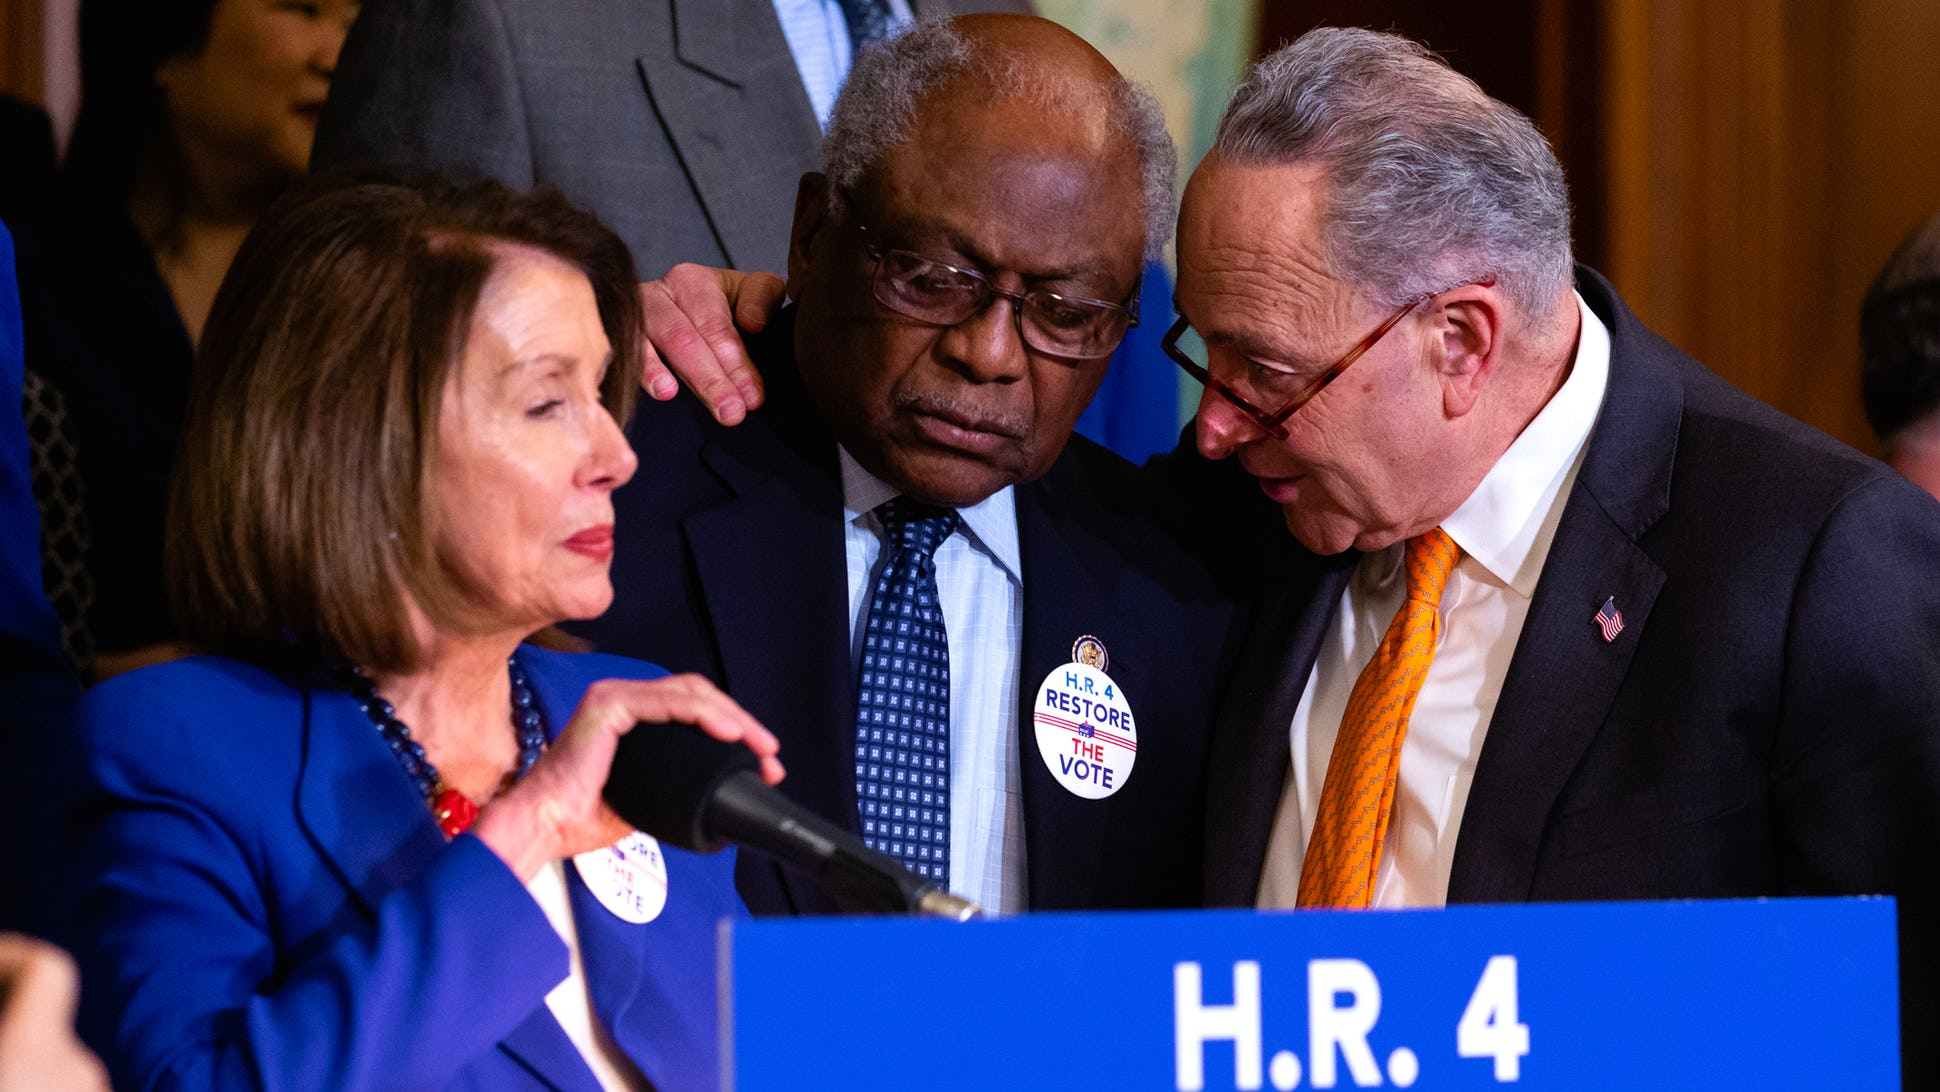 DAILY WIRE – Clyburn On Democrats' Coronavirus Bill Agenda: 'Tremendous Opportunity To Restructure Things To Fit Our Vision'